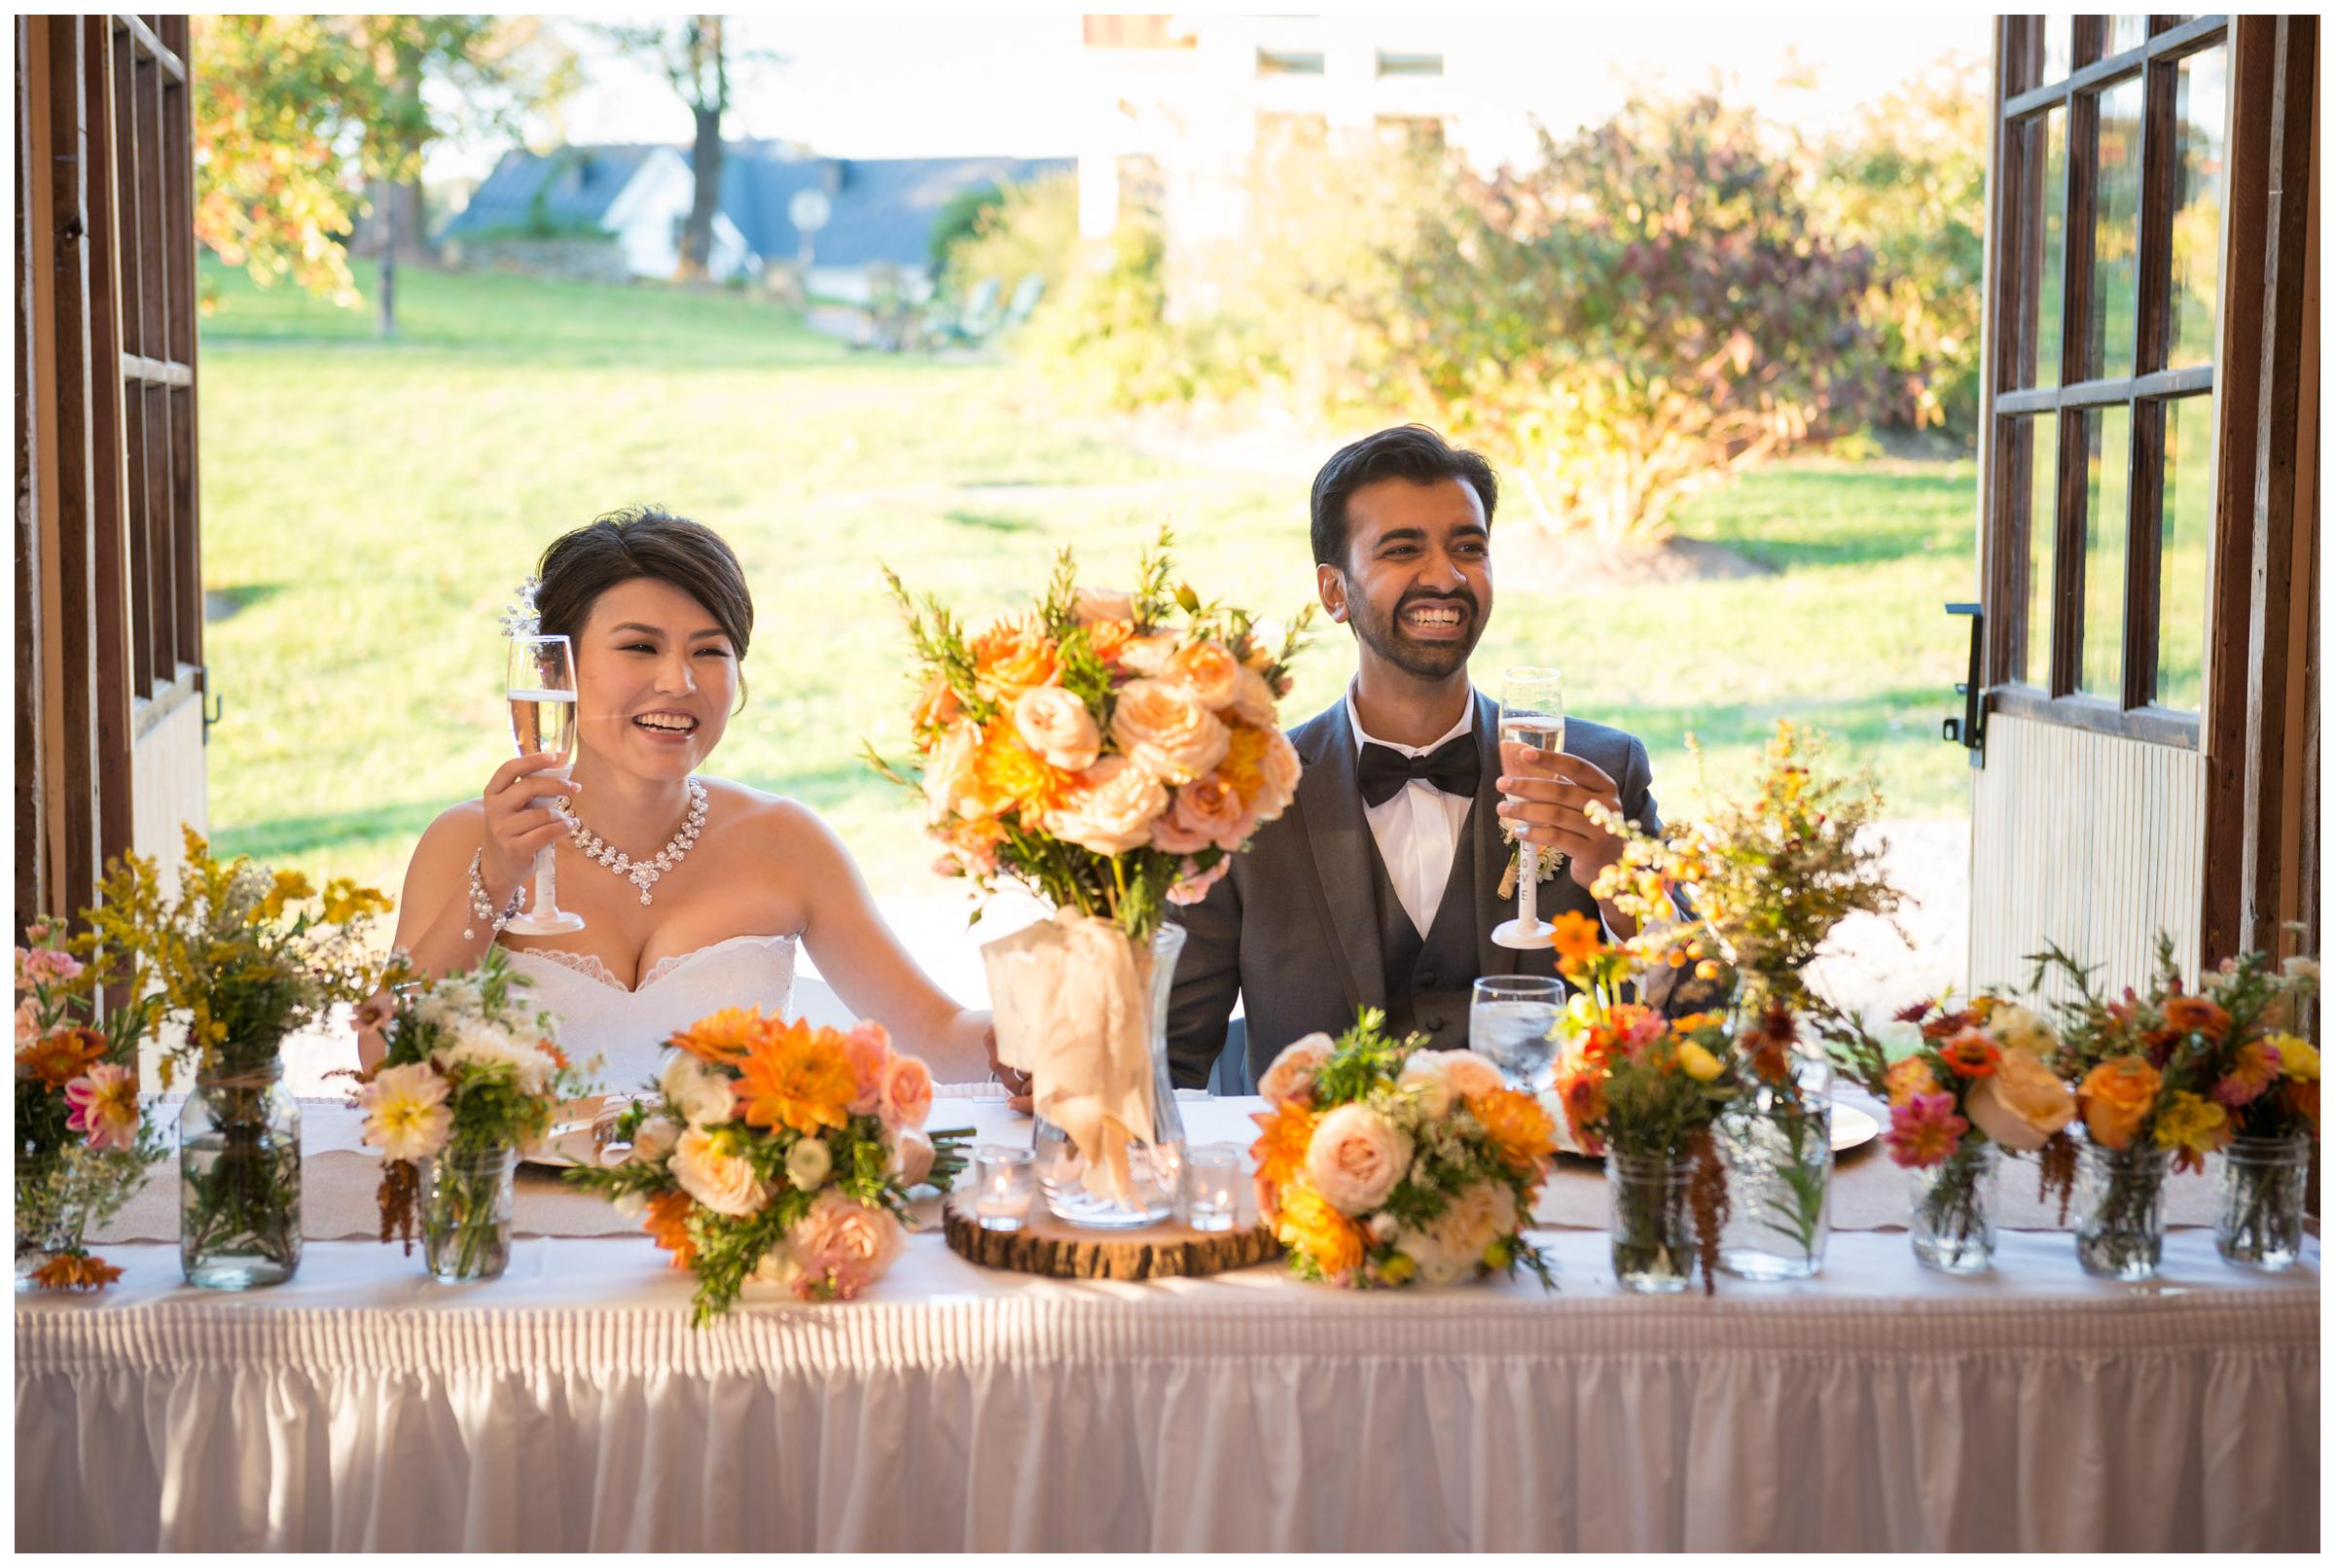 Bride and groom laugh during toasts at rustic barn wedding reception in Northern Virginia.